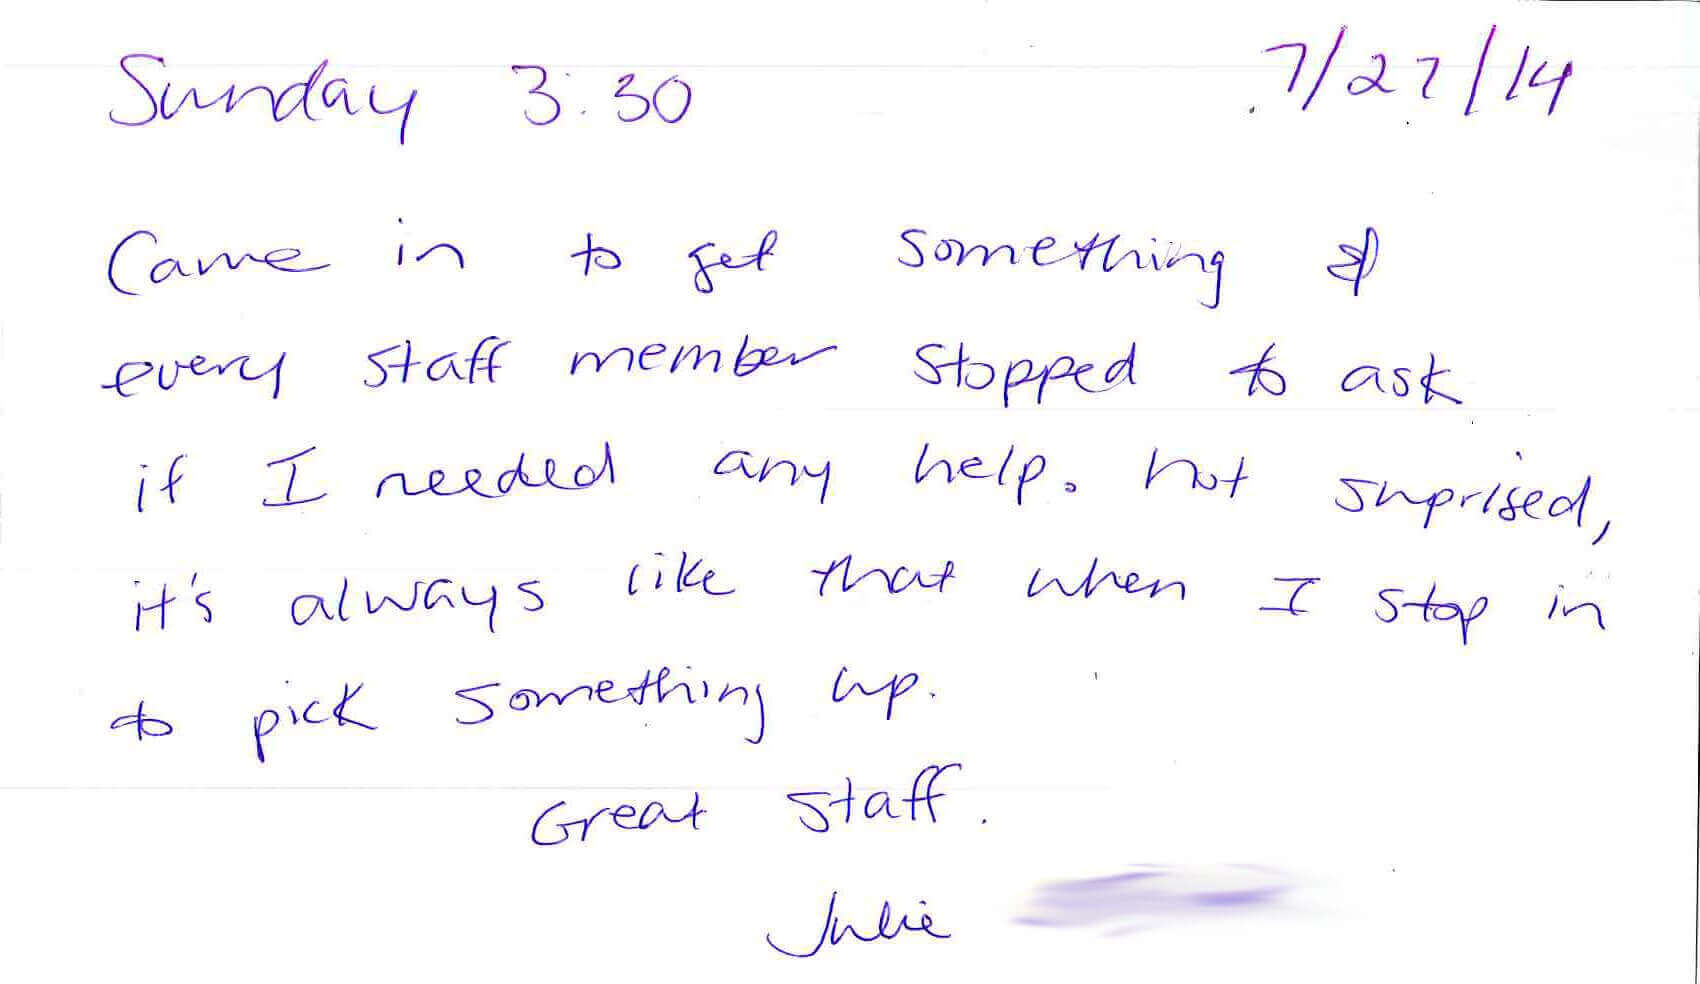 Testimonial from our customer, Julie